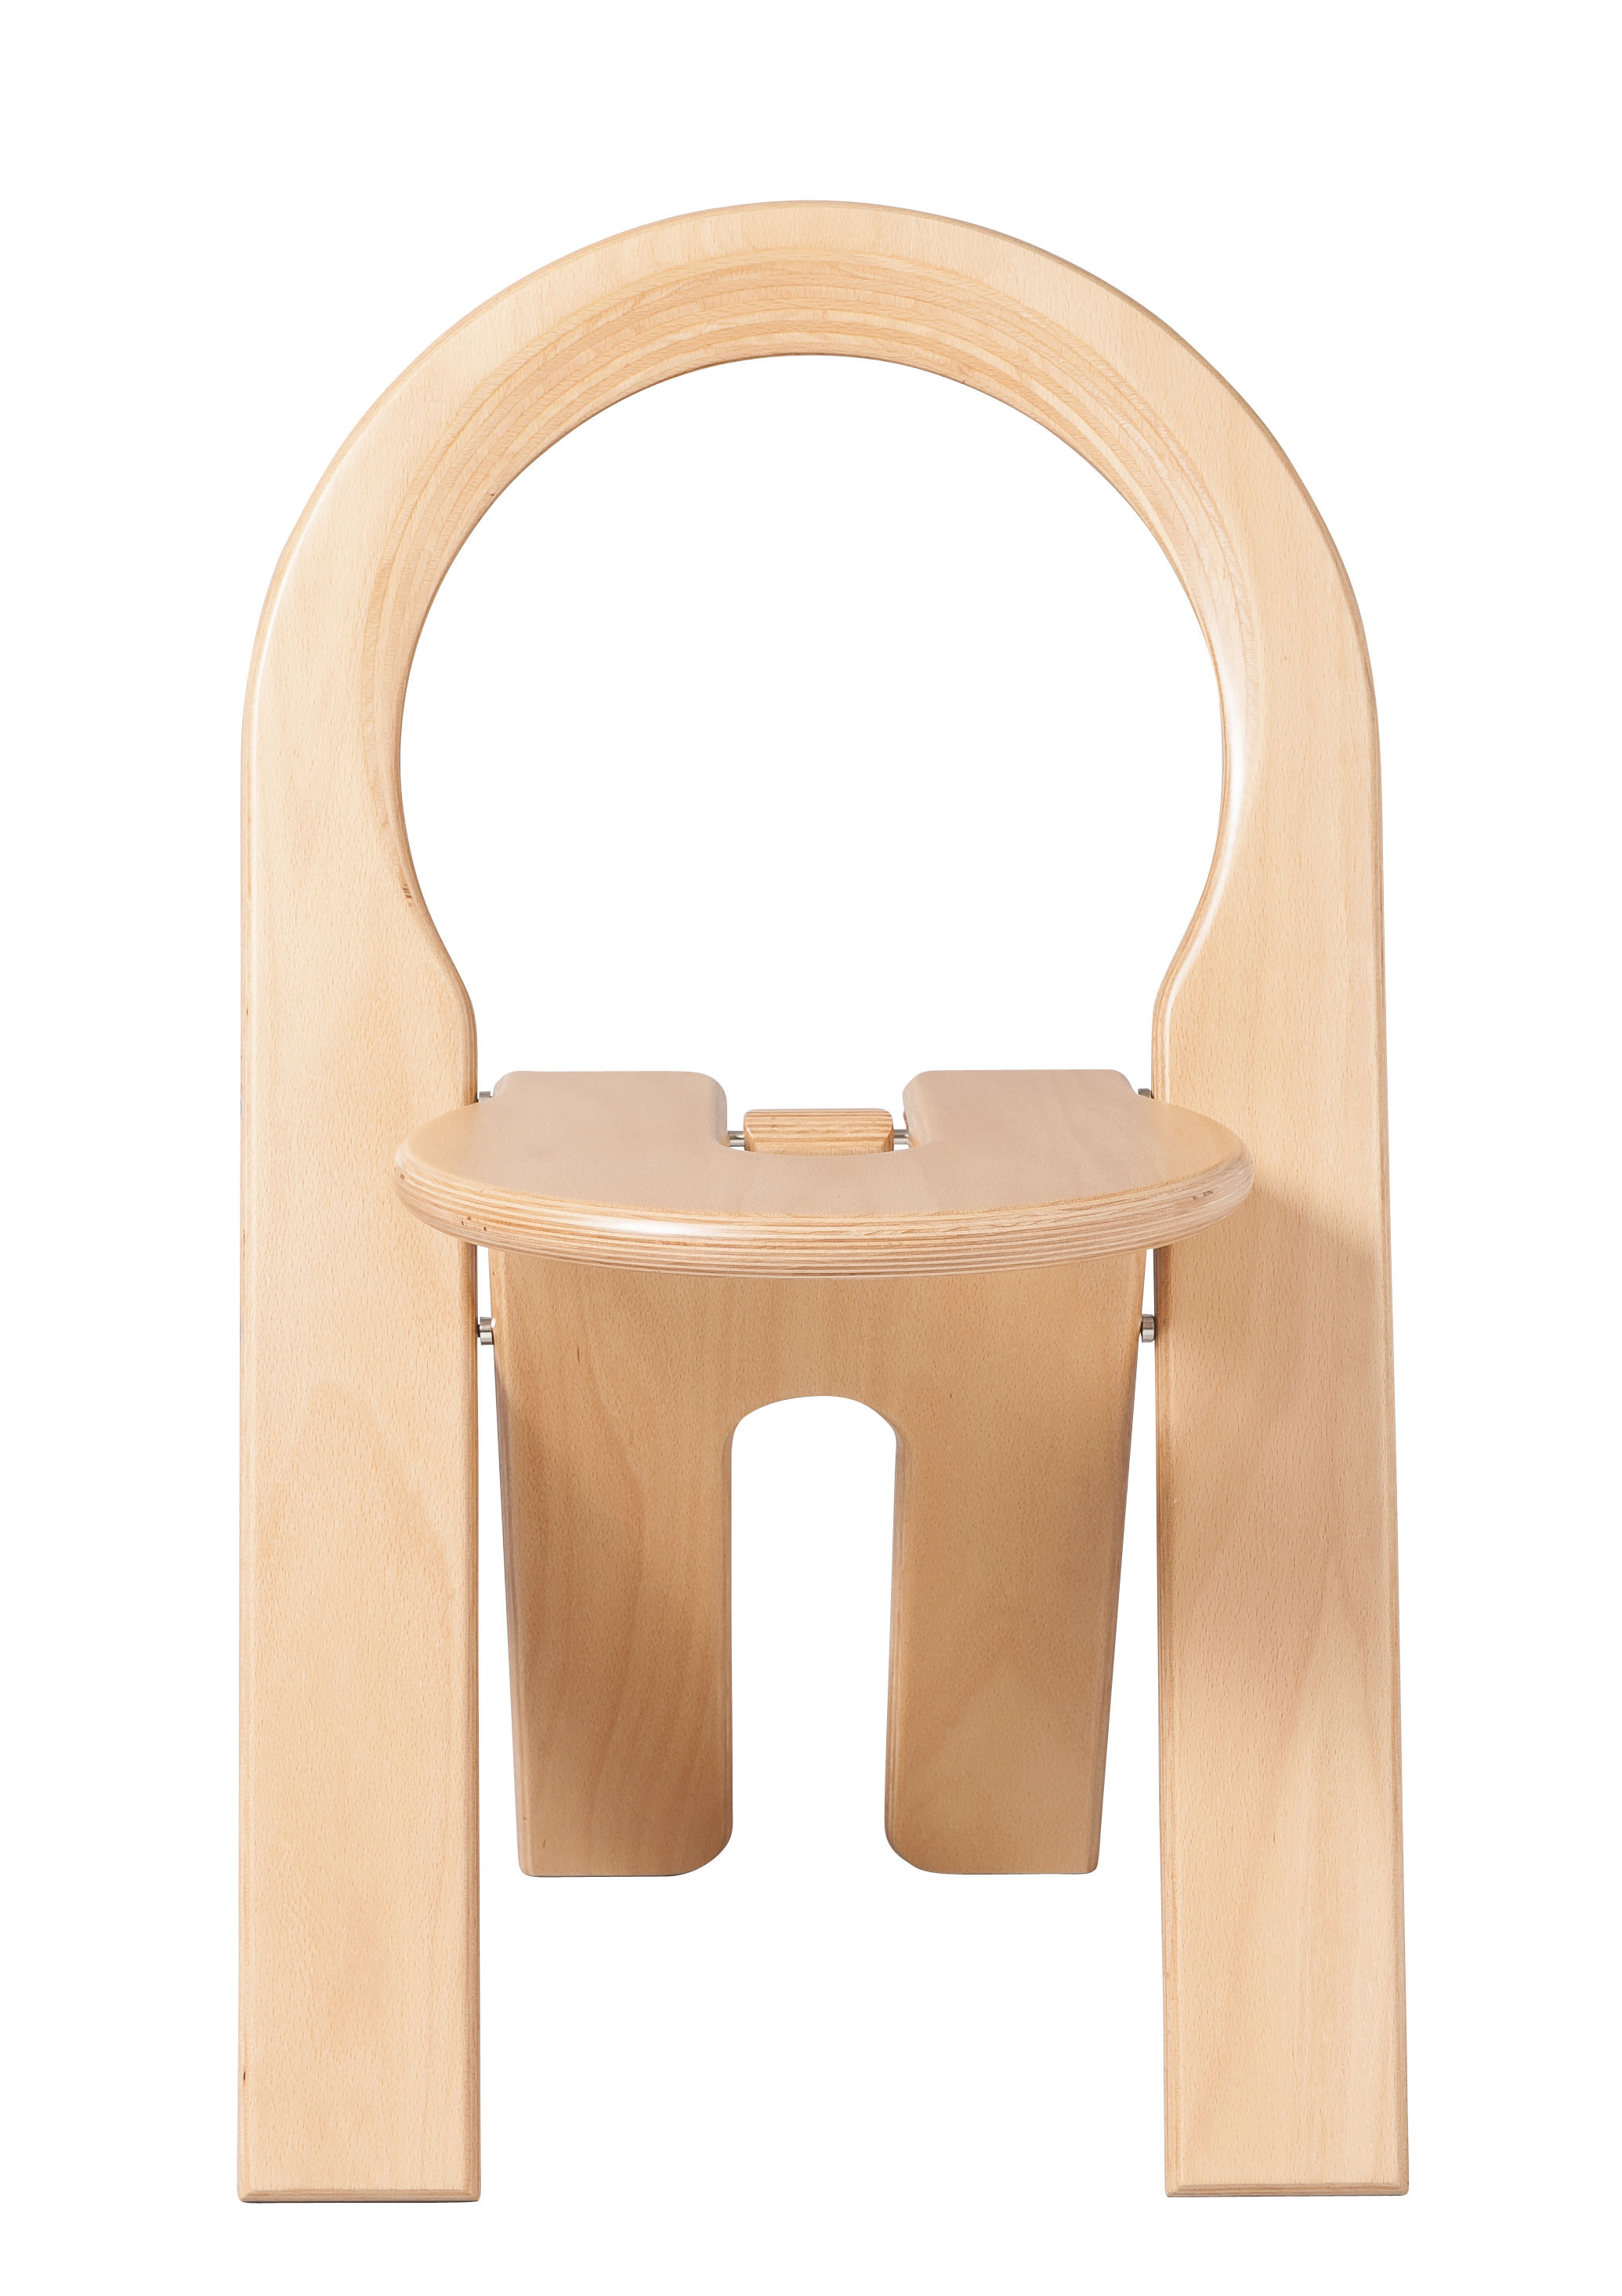 Furniture - Chairs - TS Folding chair - Roger Tallon / 1977 reissue by Sentou Edition - Chair / Natural wood - Natural stratified birch